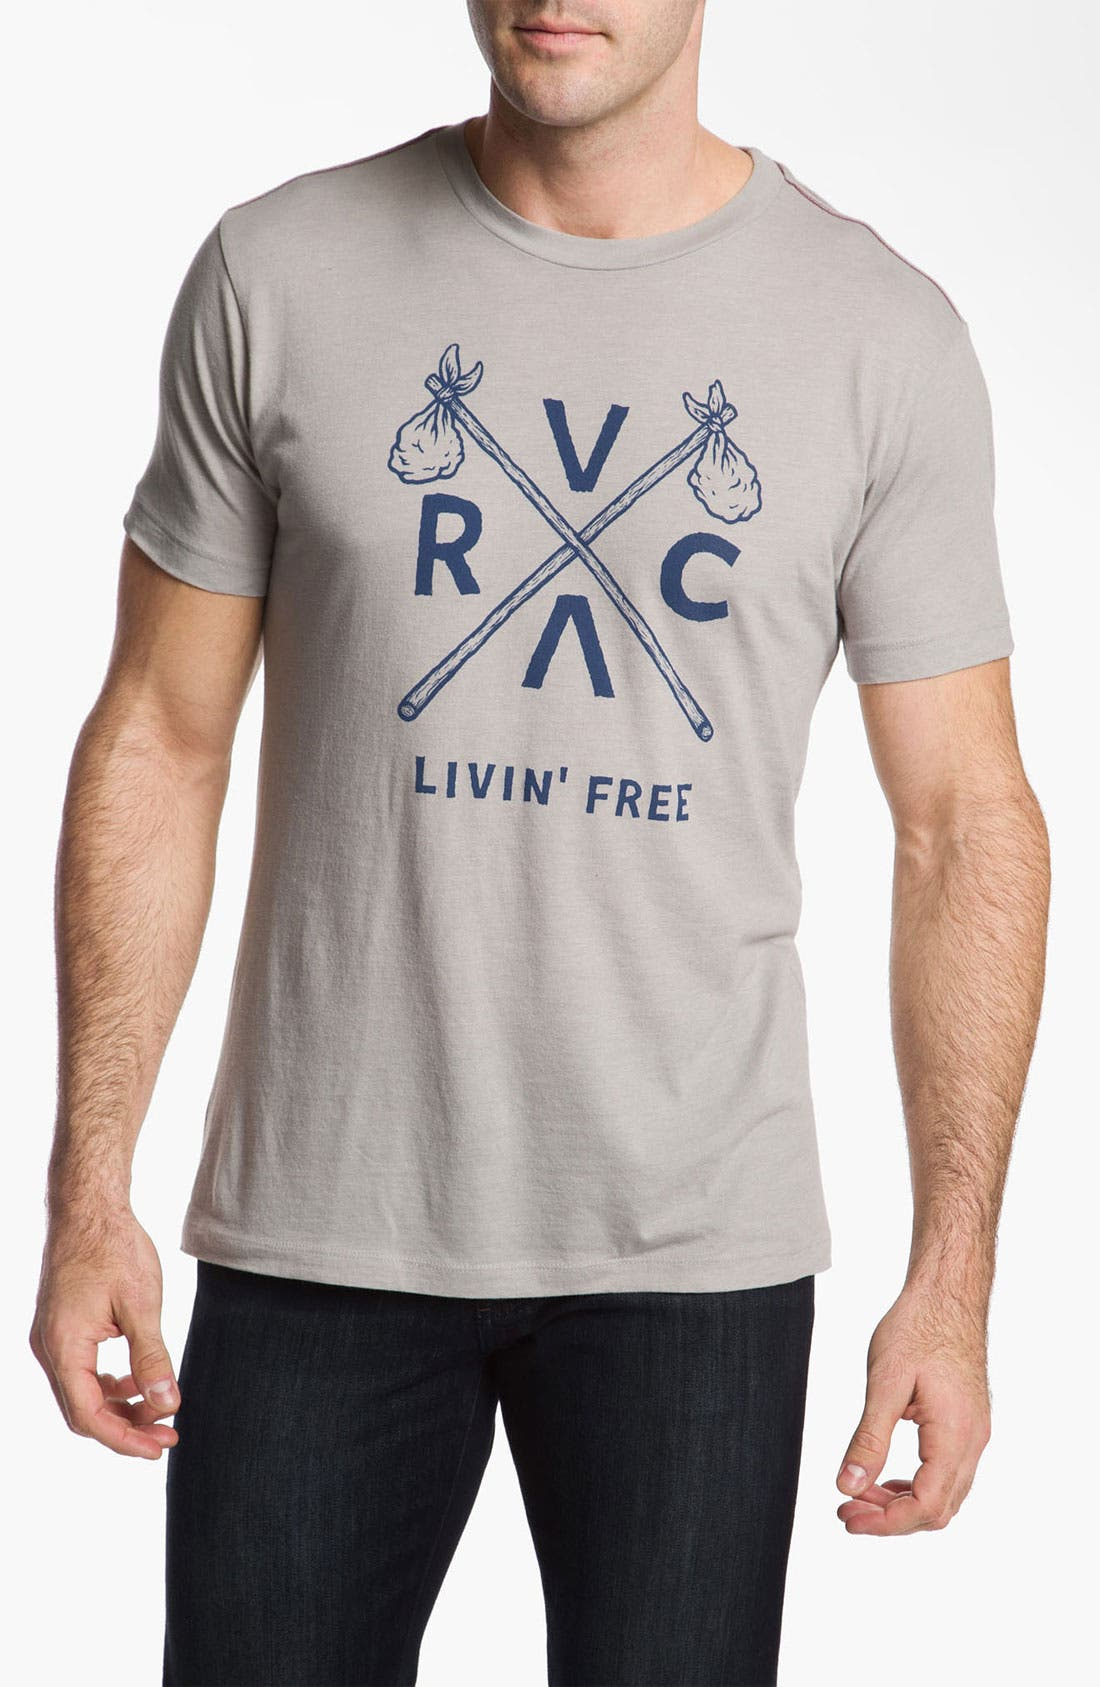 Alternate Image 1 Selected - RVCA 'Livin' Free 2' Vintage Wash T-Shirt